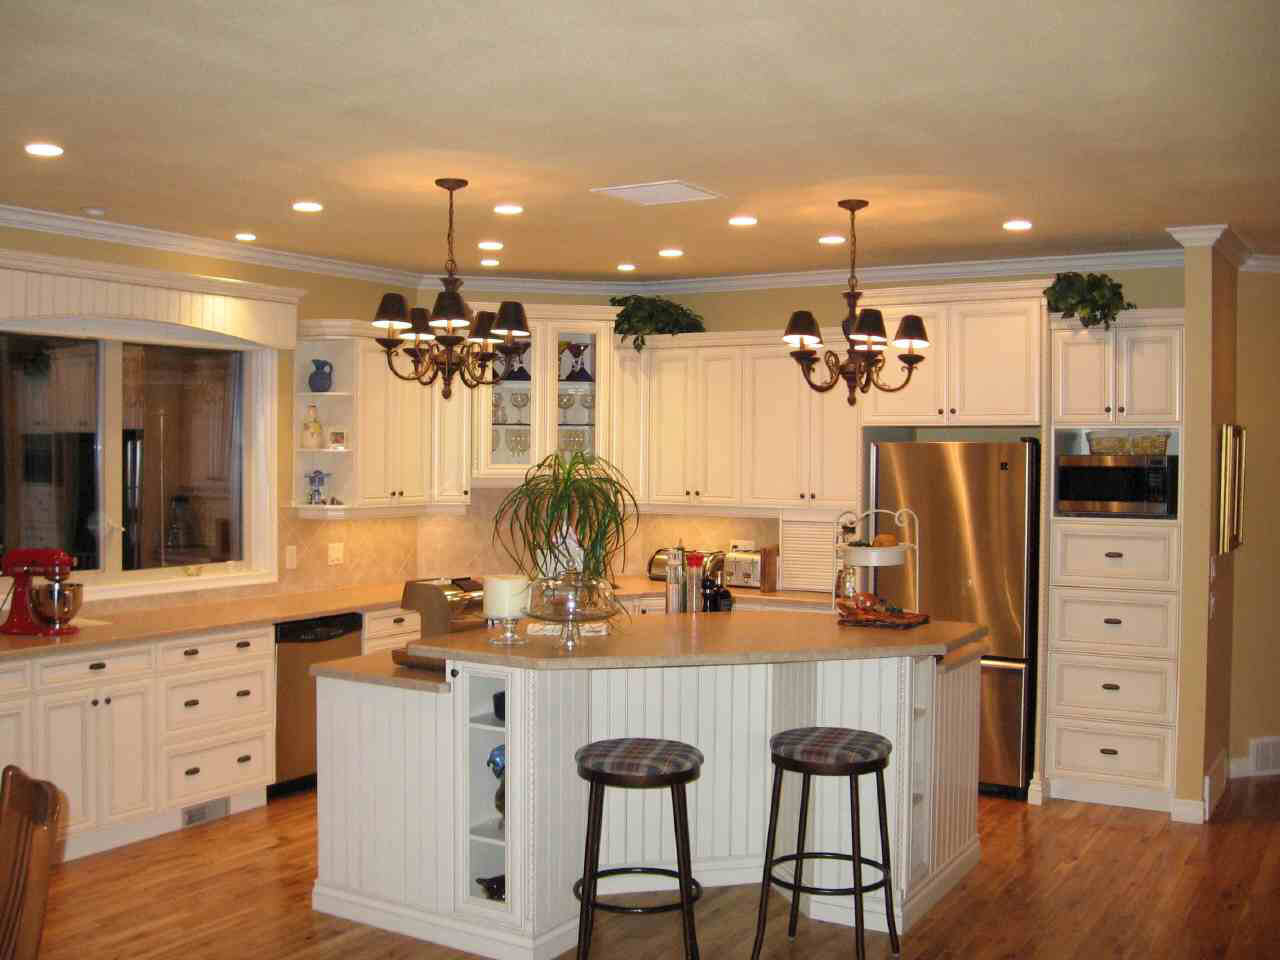 Movable kitchen cabinets Photo - 1